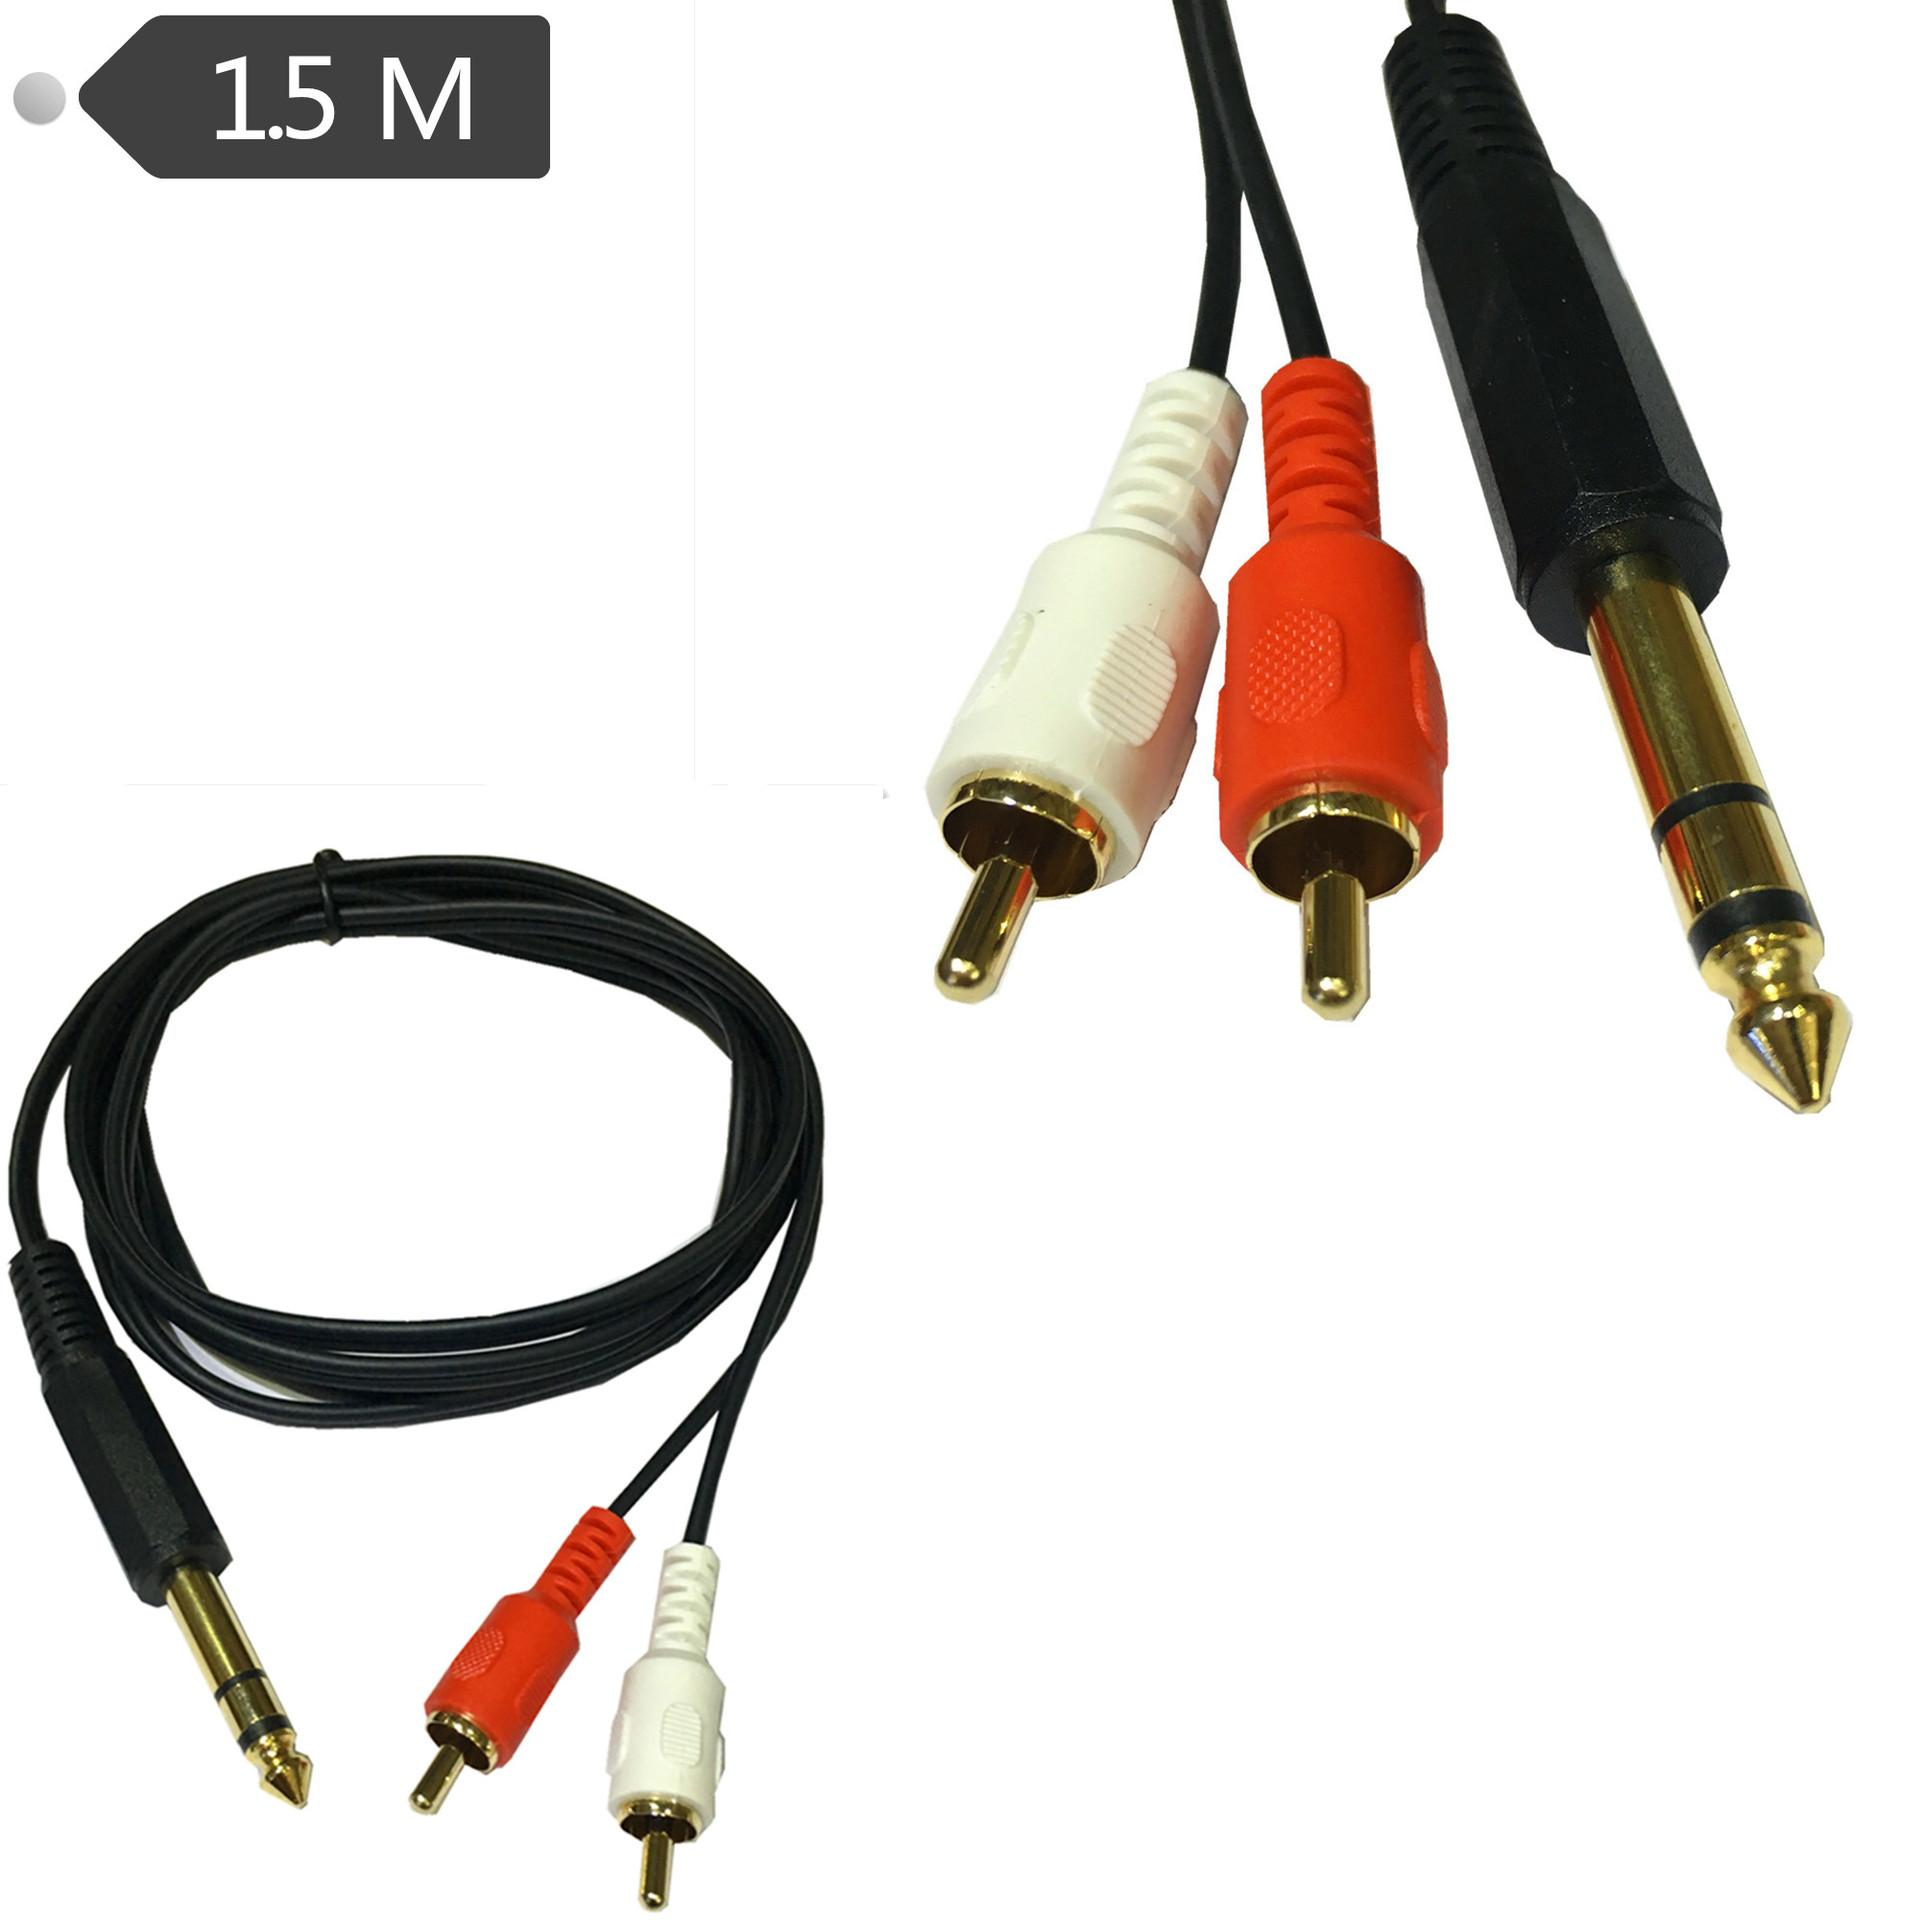 6.35mm Male Jack To 2 RCA Phono Male Jack Stereo Audio Y Splitter Cable  1.5m Computer Printer Cables Identify Computer Cables From Candybin, $5.02|  DHgate.